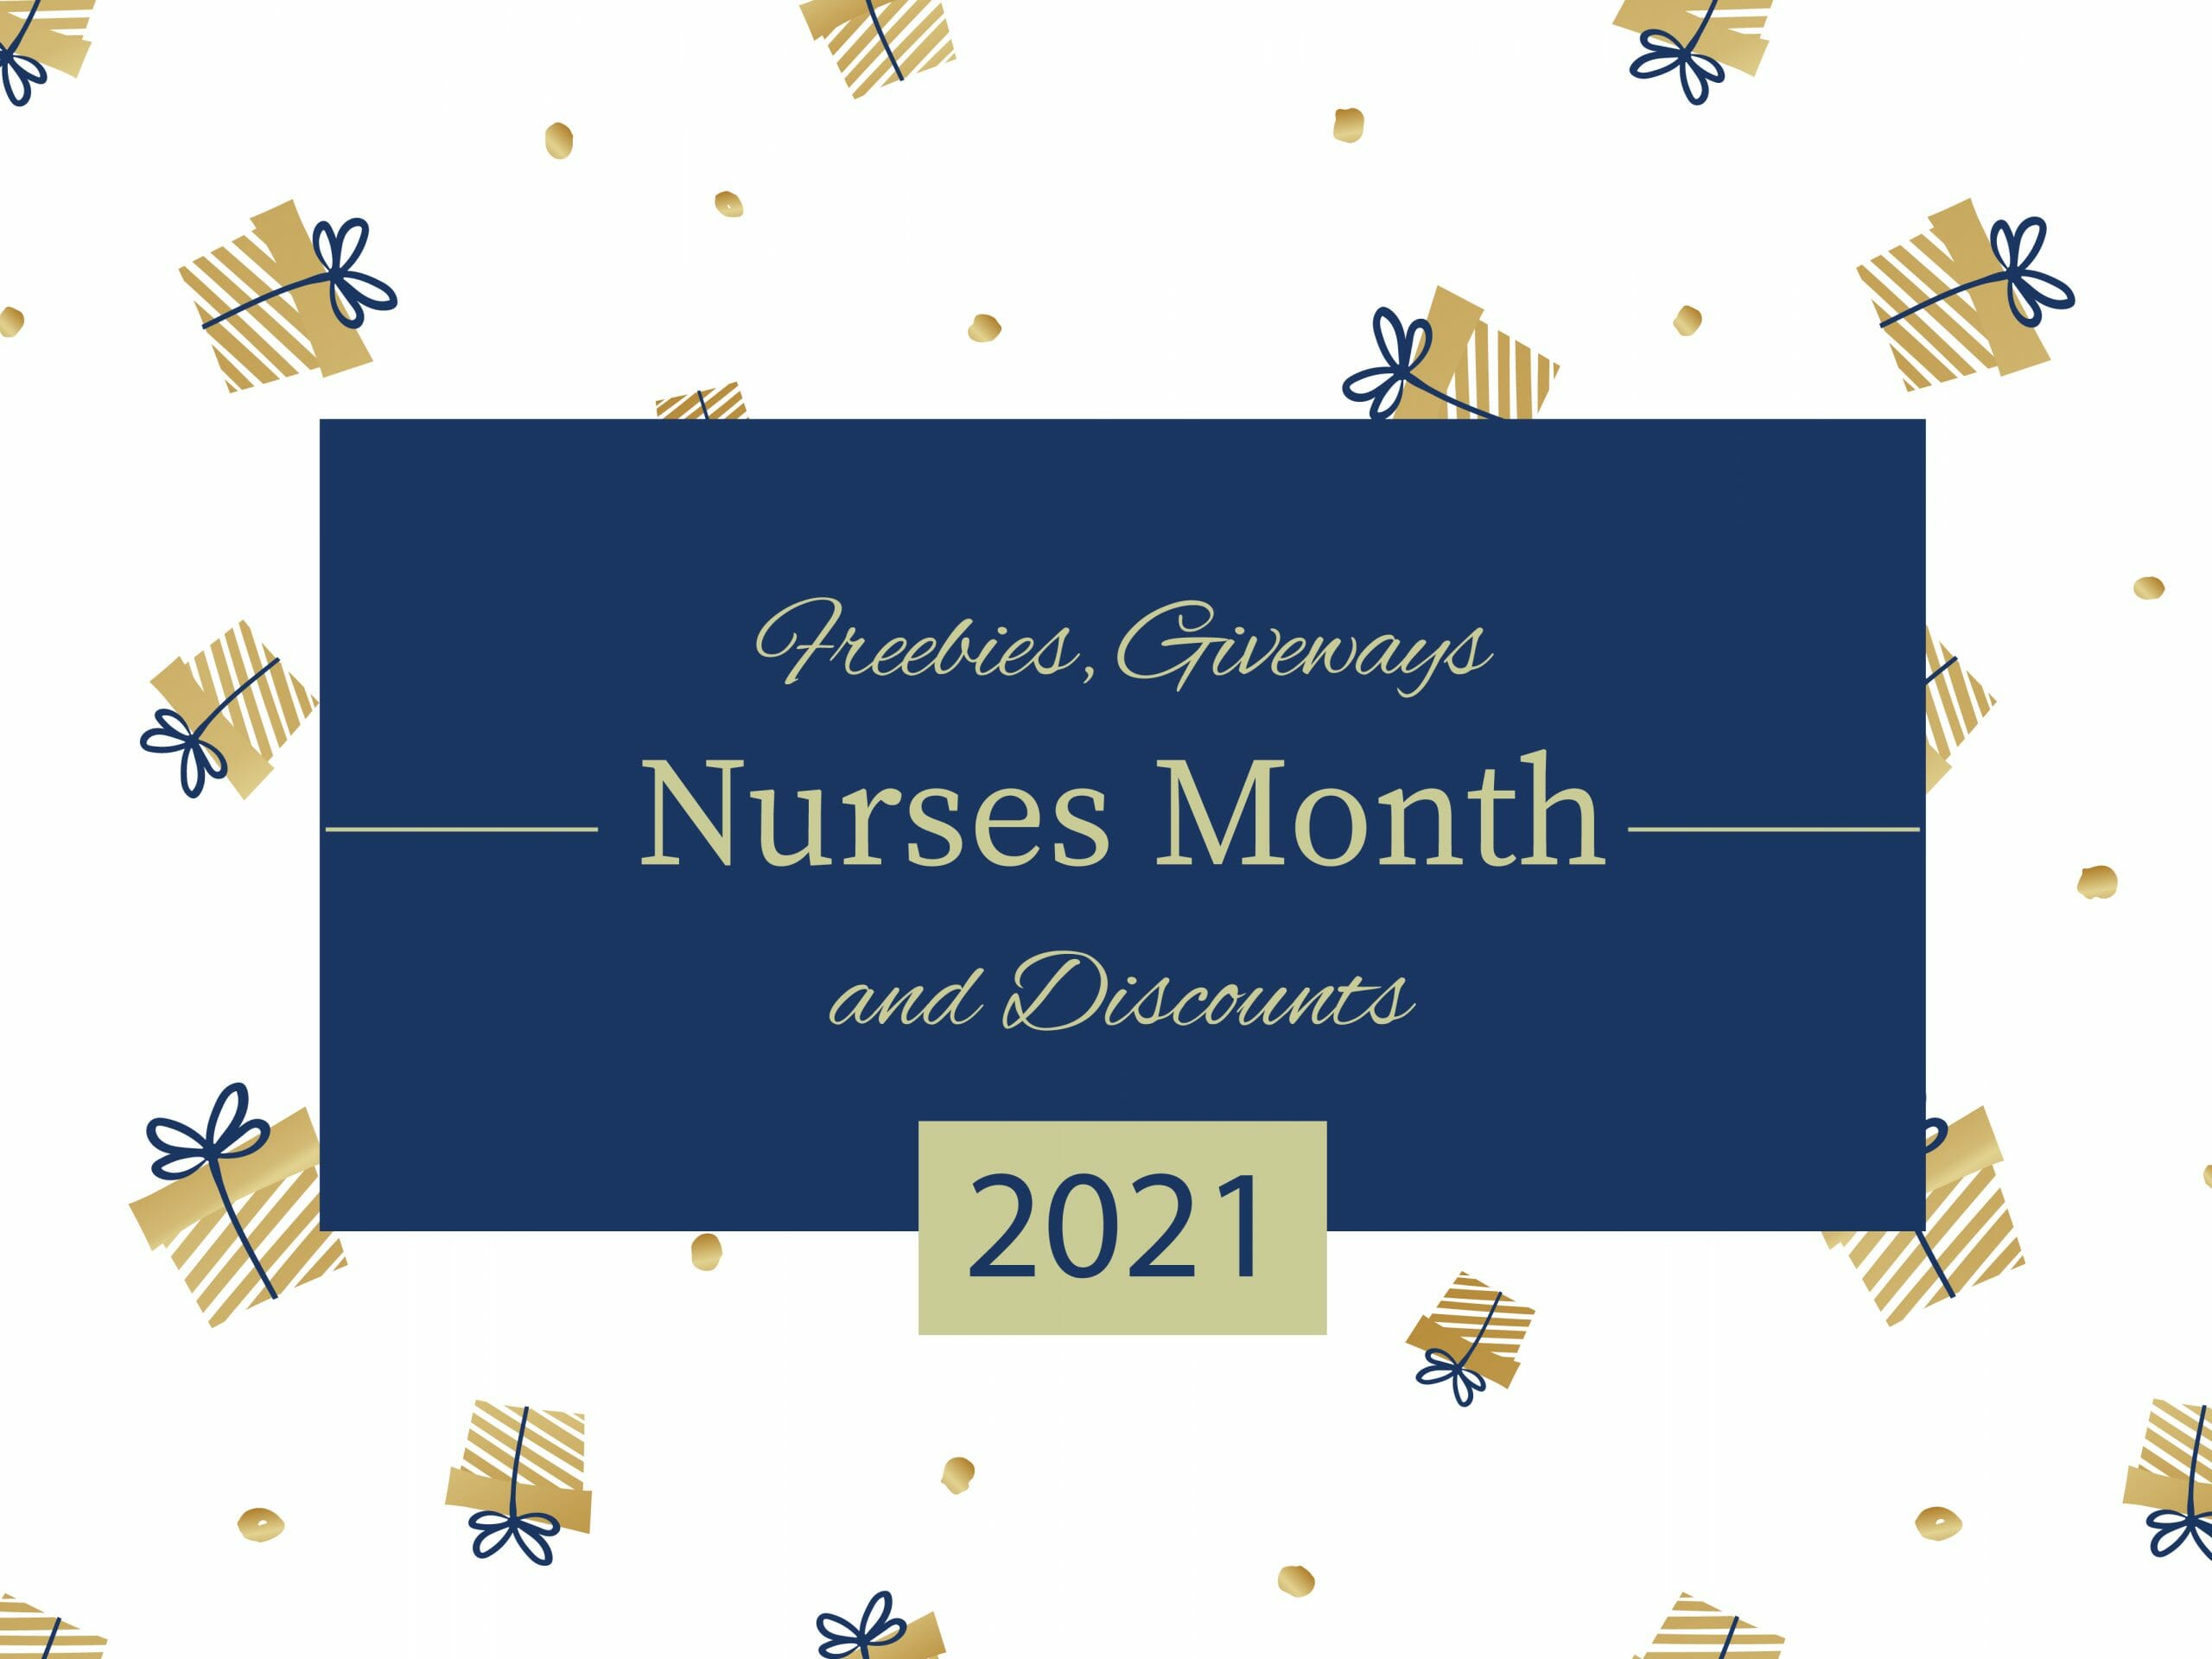 Freebies, Giveaways, and discounts for nurses month 2021